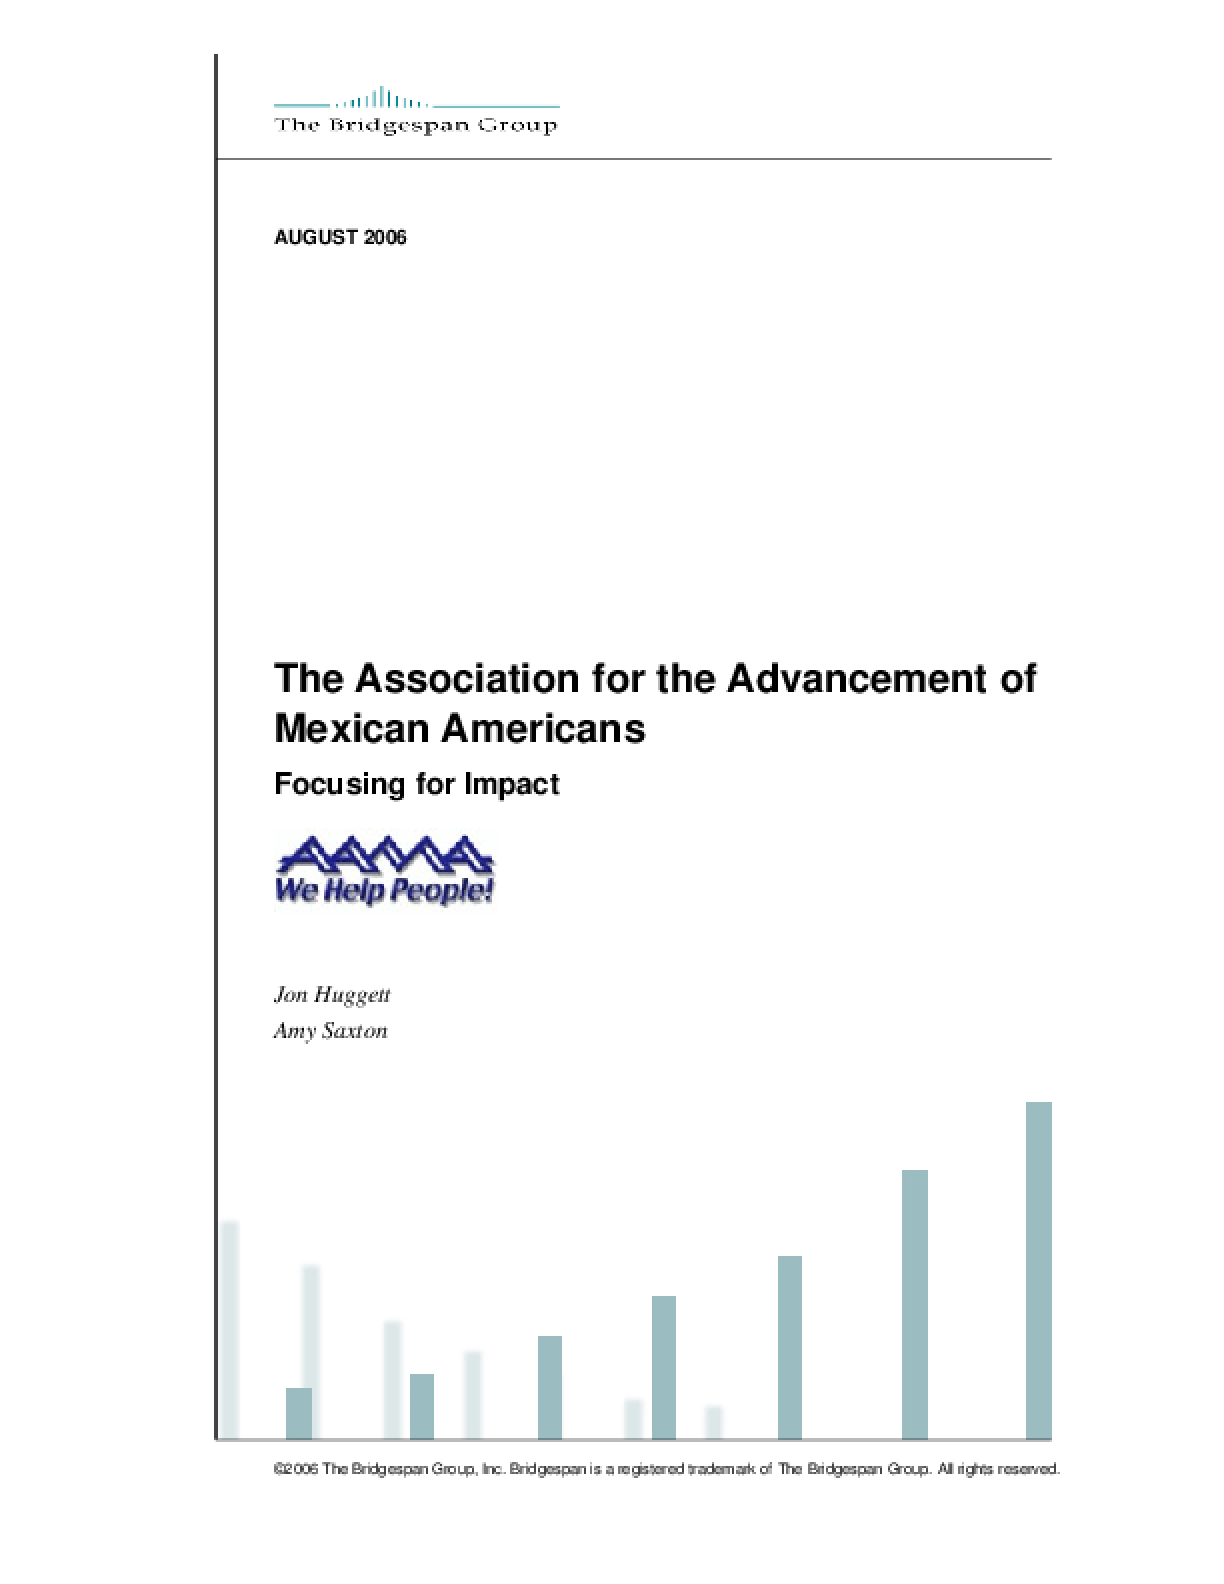 Association for the Advancement of Mexican Americans (AAMA): Focusing for Impact